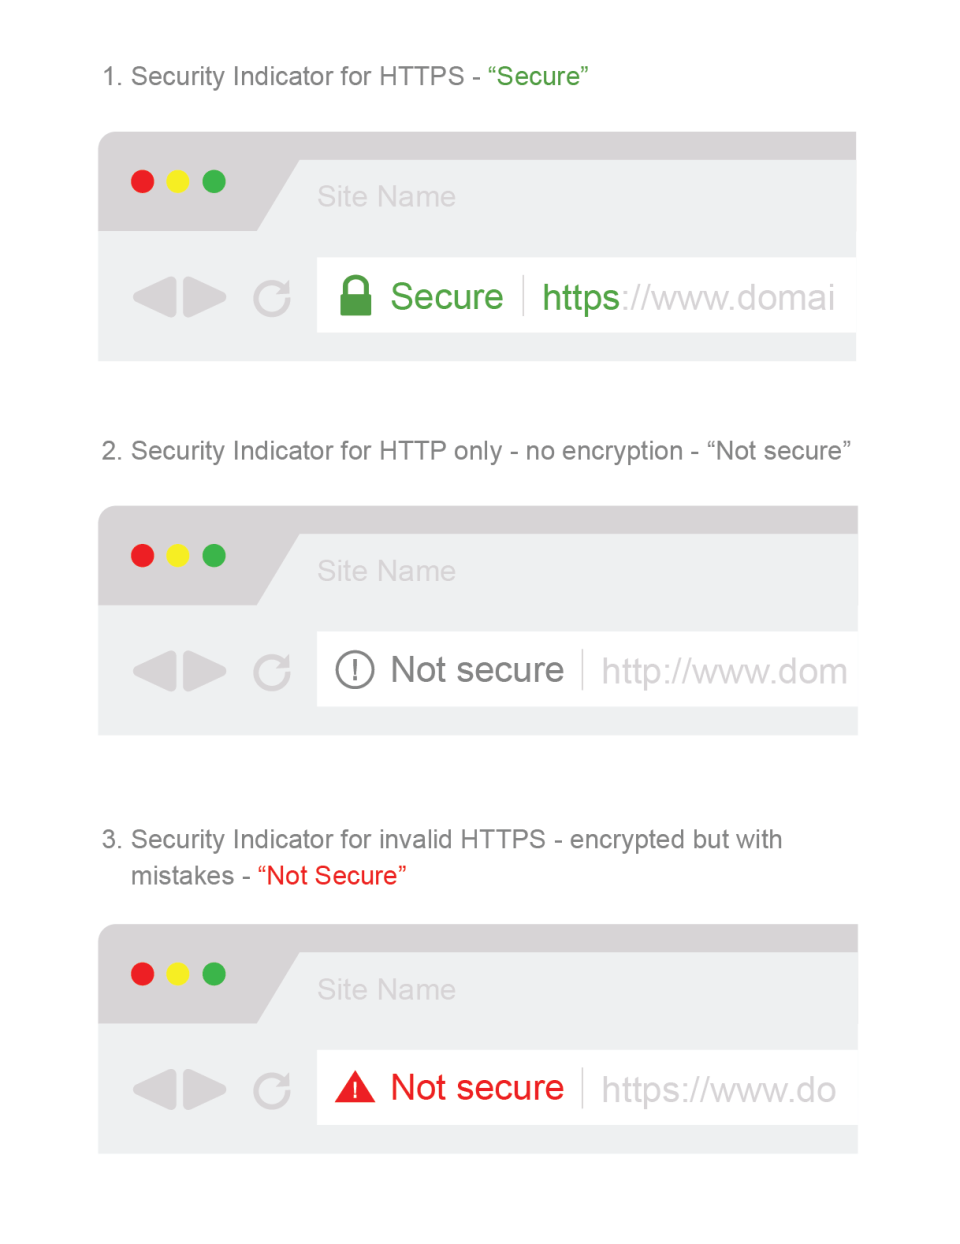 Web browsers' UI for HTTPS